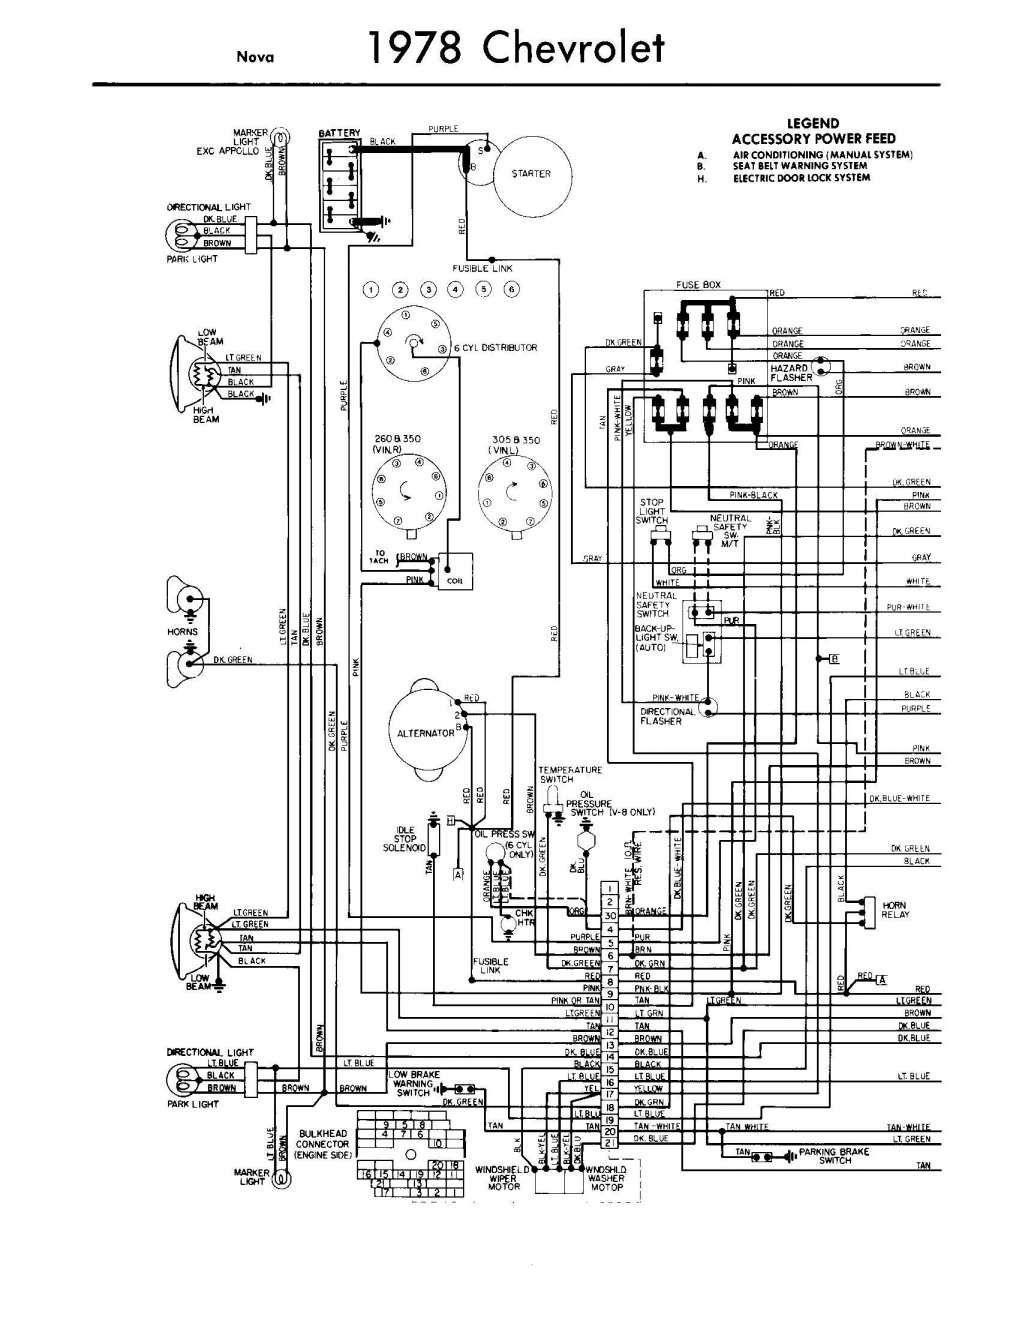 10 1979 Chevy Truck Engine Diagram1979 Chevy Truck Engine Wiring Diagram Truck Diagram Wiringg Net In 2020 1979 Chevy Truck Chevy Trucks Electrical Wiring Diagram